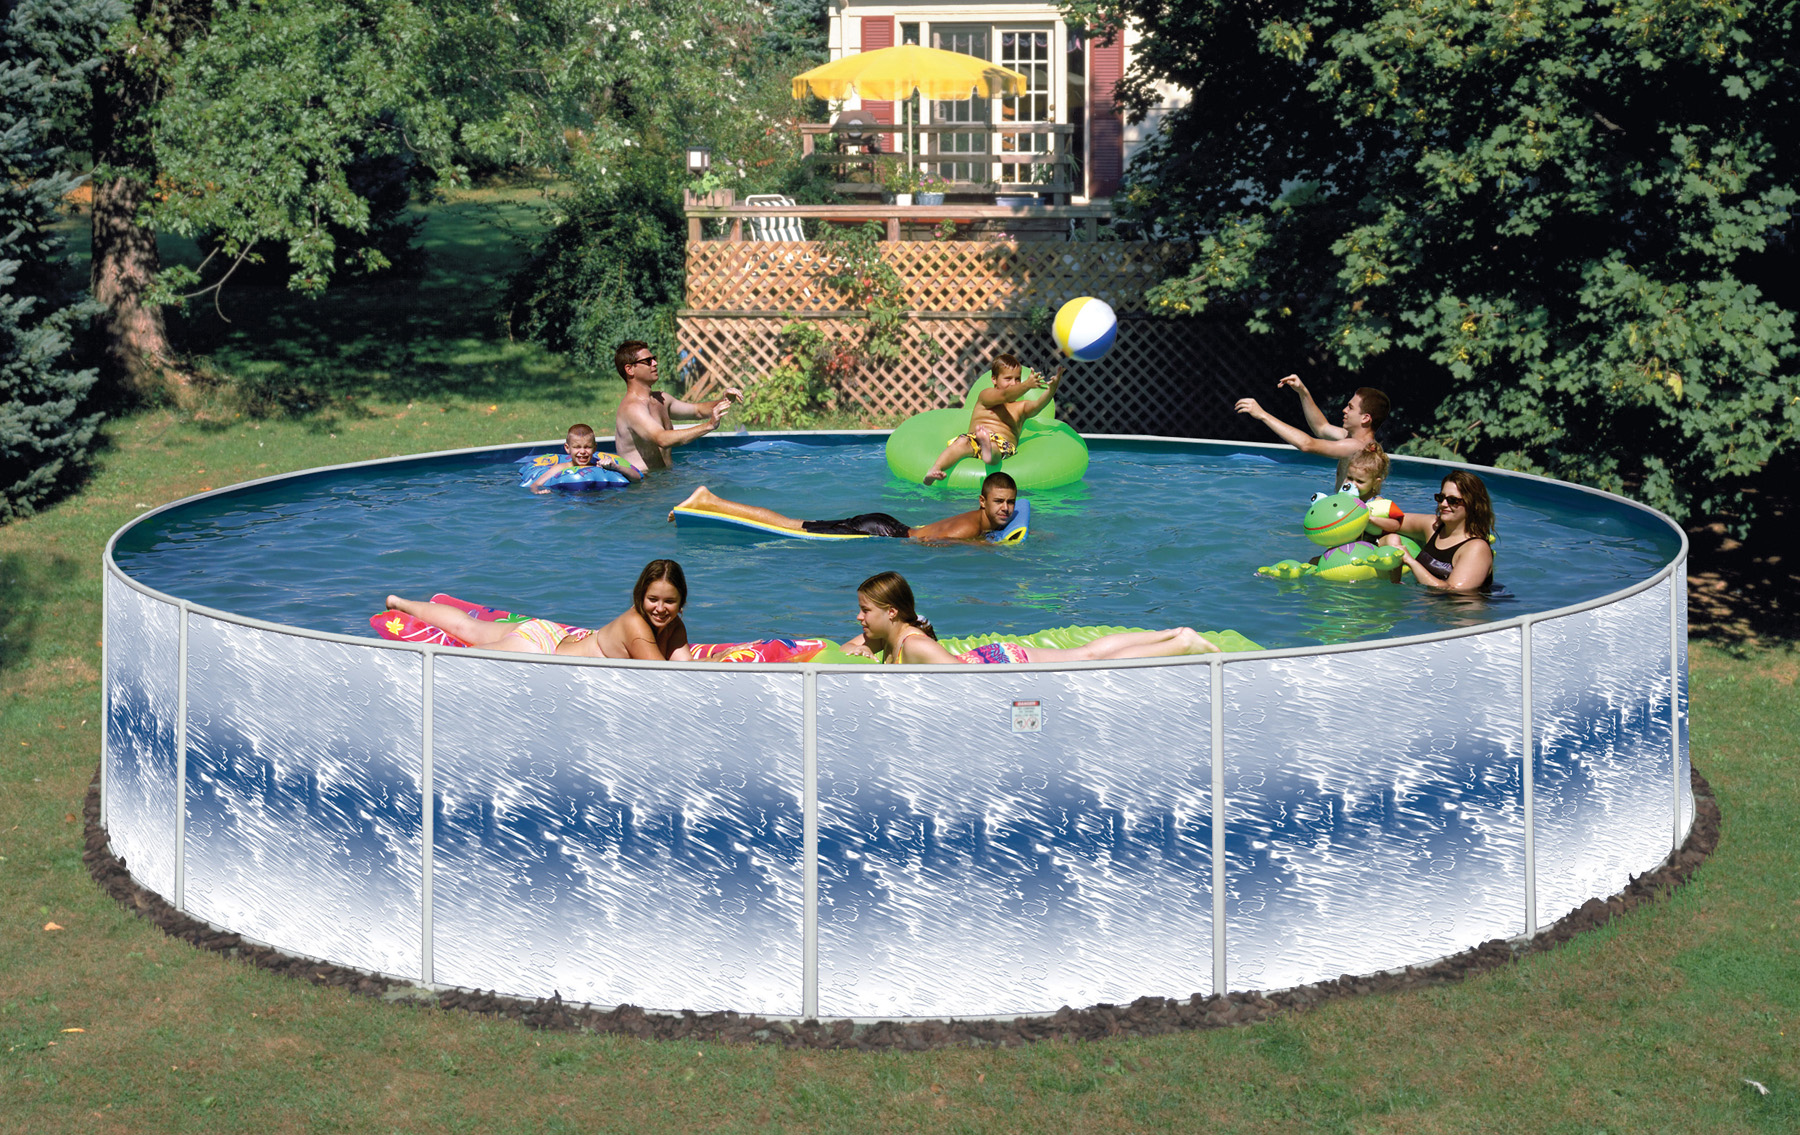 2019 18 x52 round solar flare pool package closeout - Swimming pool discounters ...